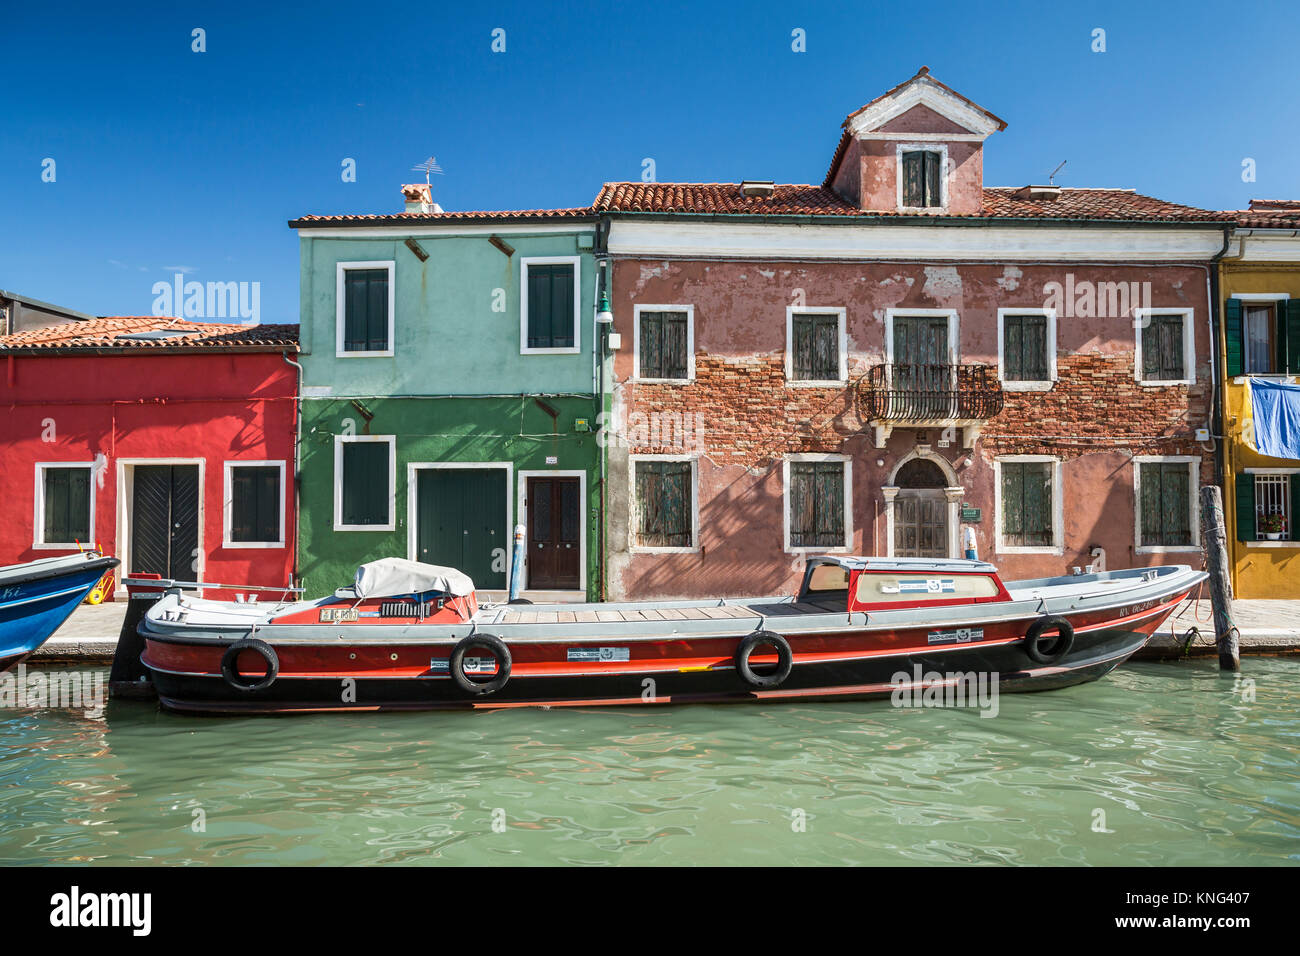 The colorful buildings, canals and boats in the Venetian village of Burano, Venice, Italy, Europe. - Stock Image